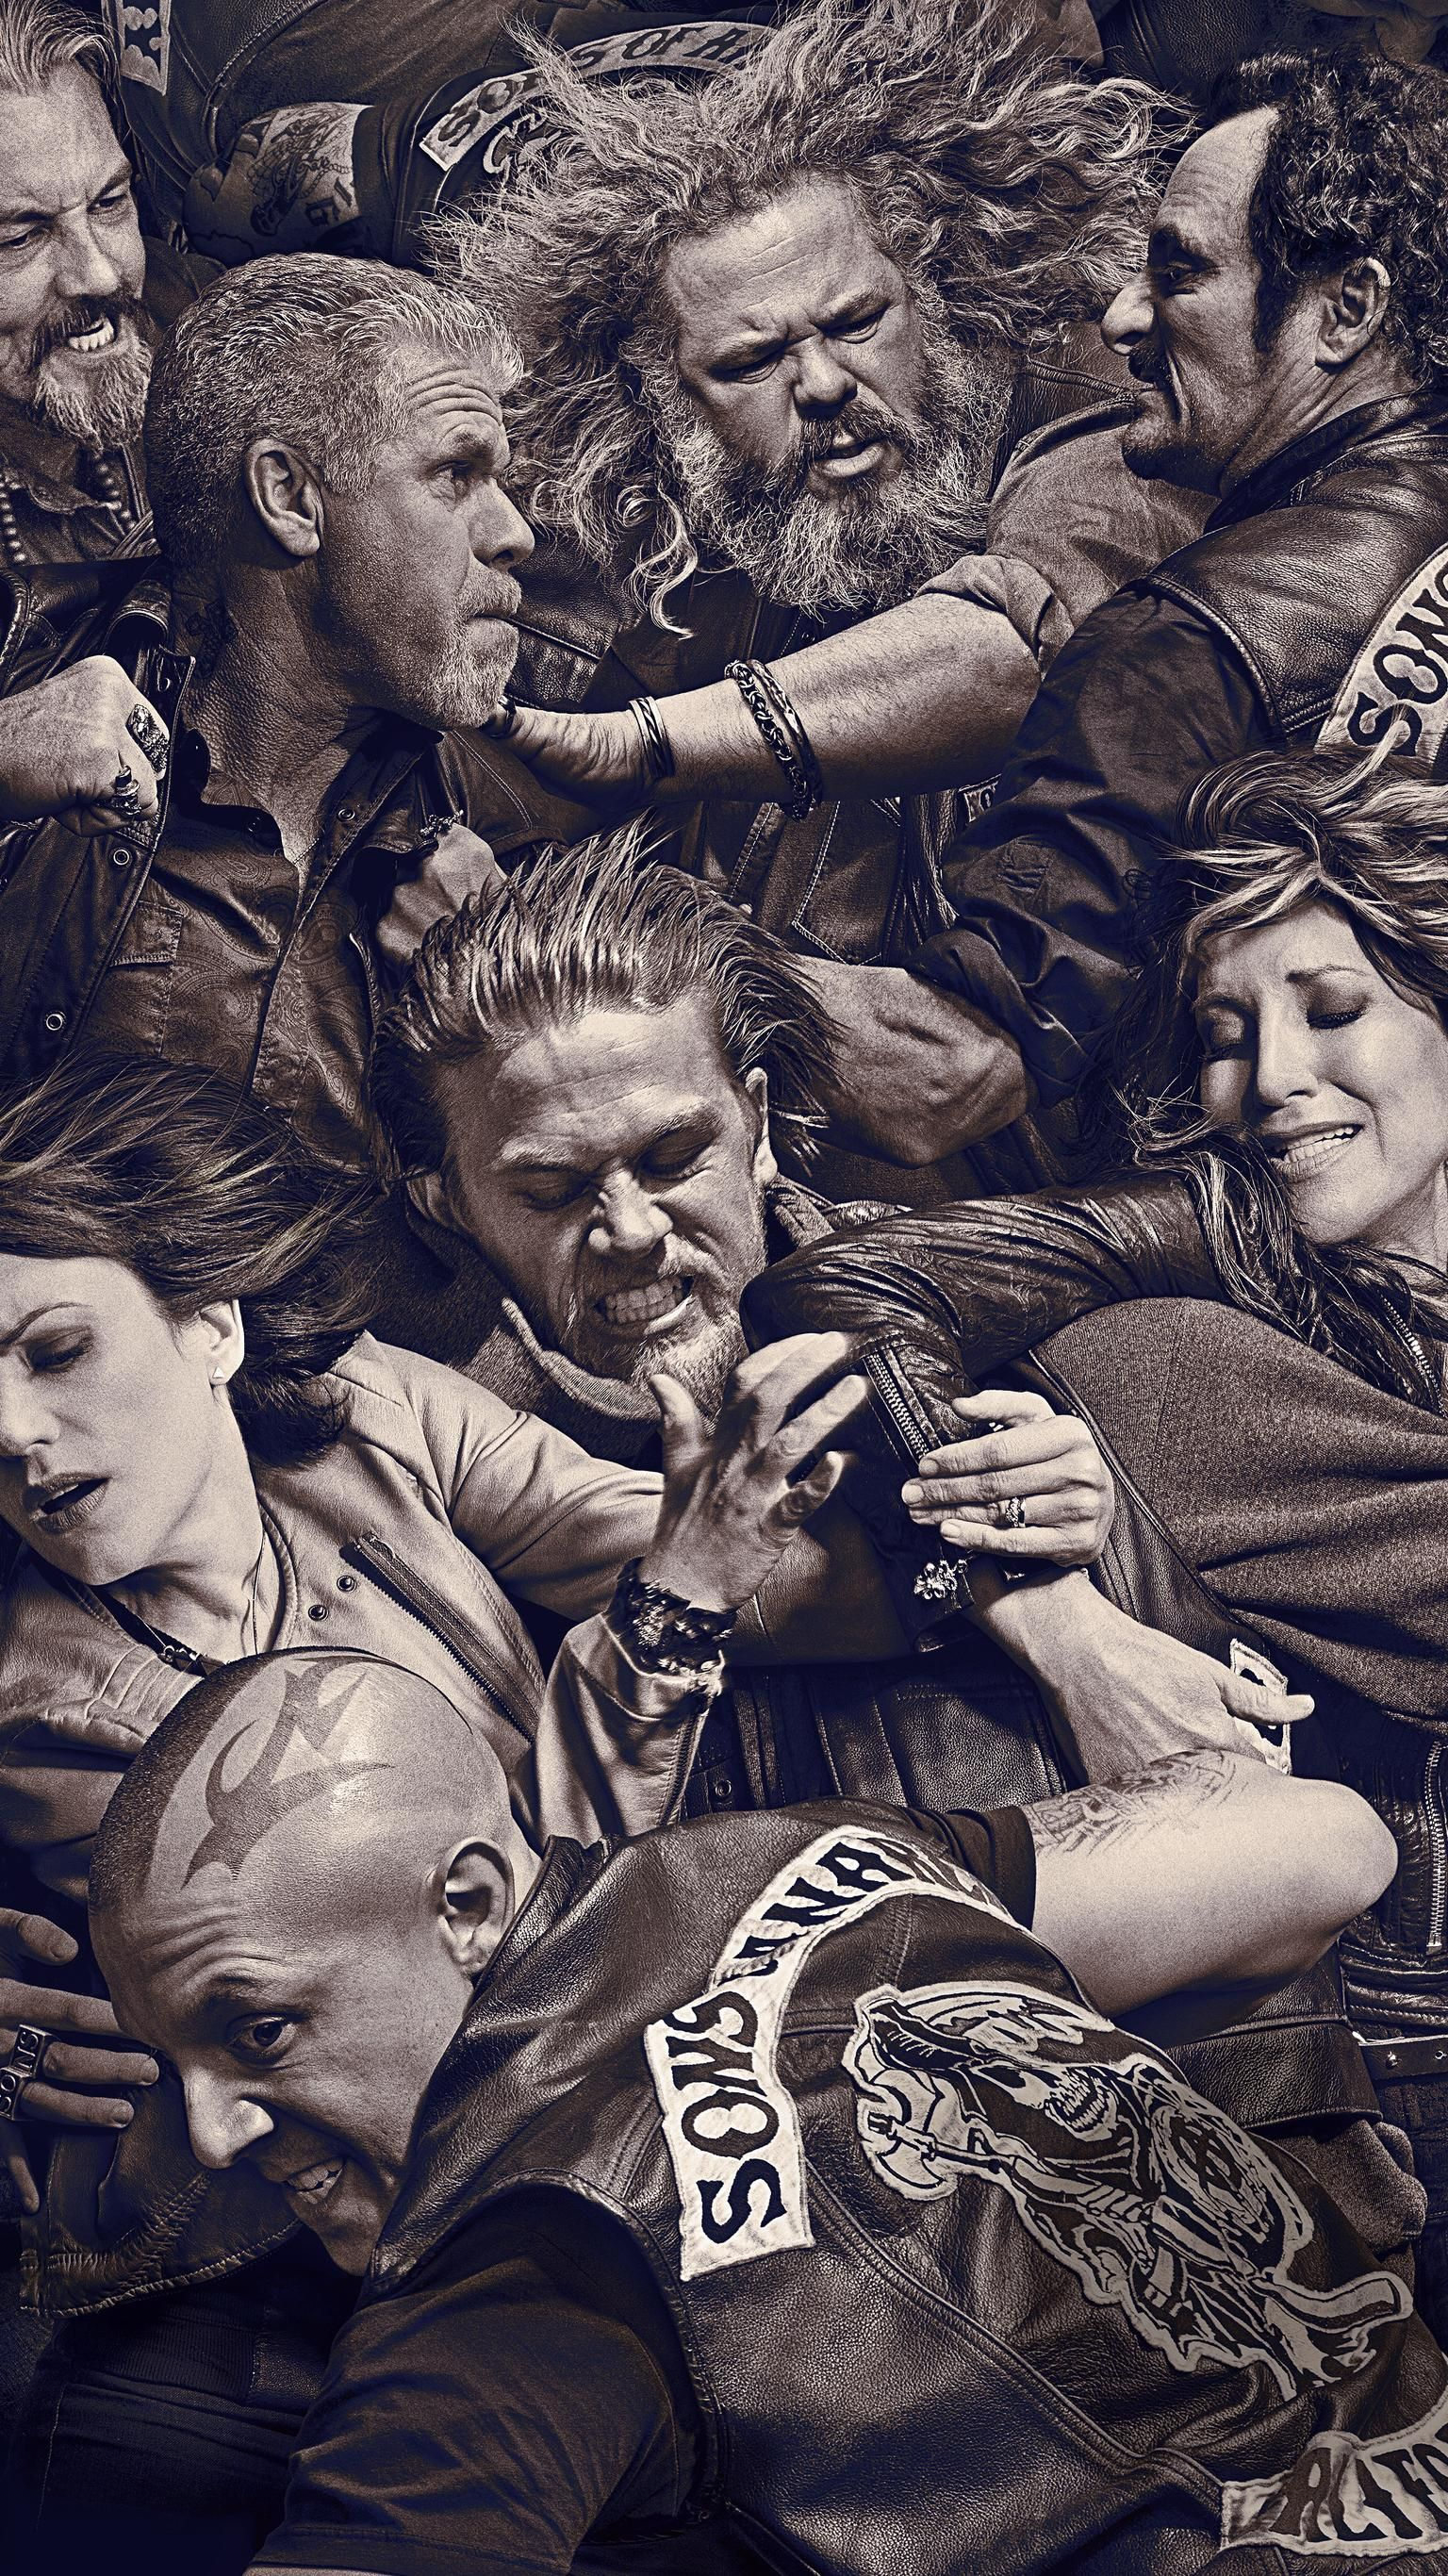 Sons of Anarchy Phone Wallpaper in 2020 Sons of anarchy